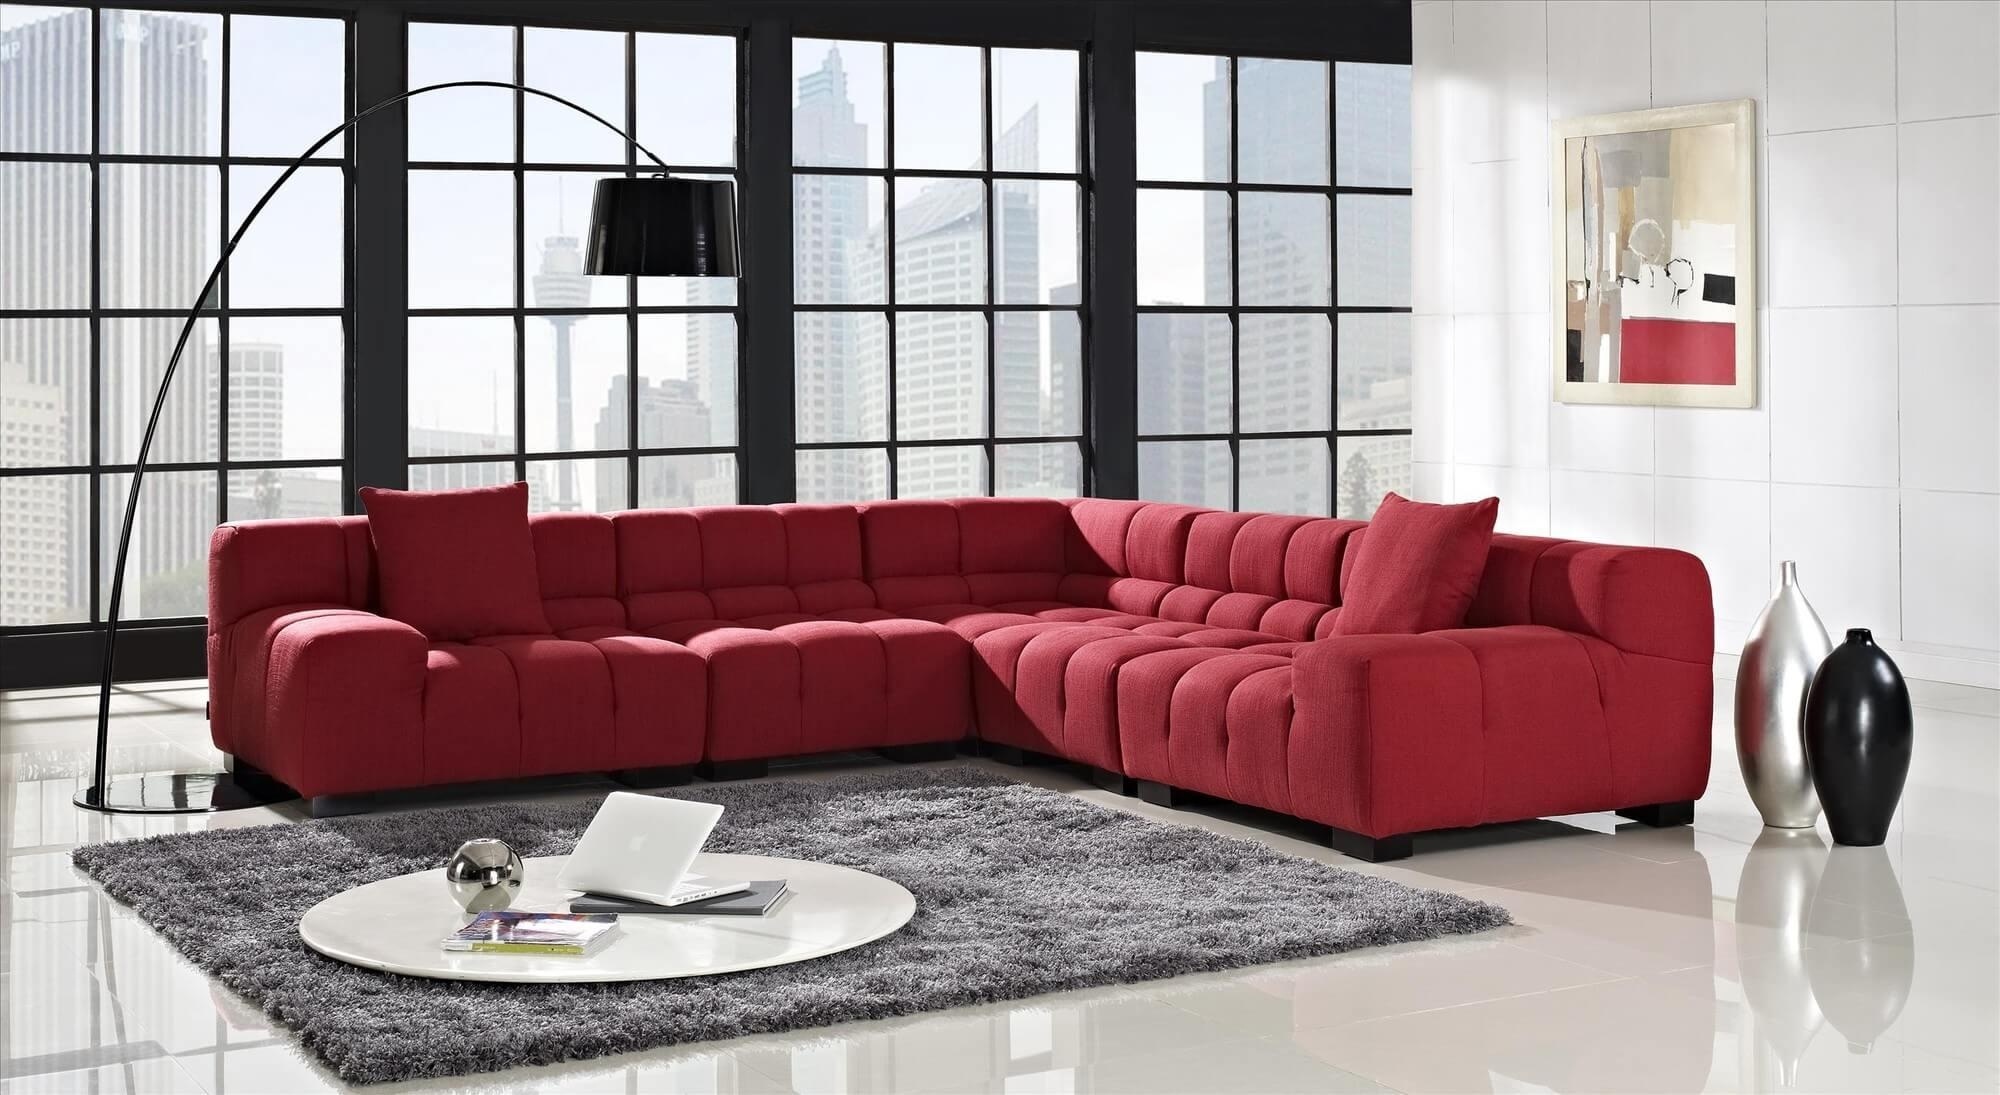 Tosh Furniture Modern Franco Red Black Leather Sofa Set